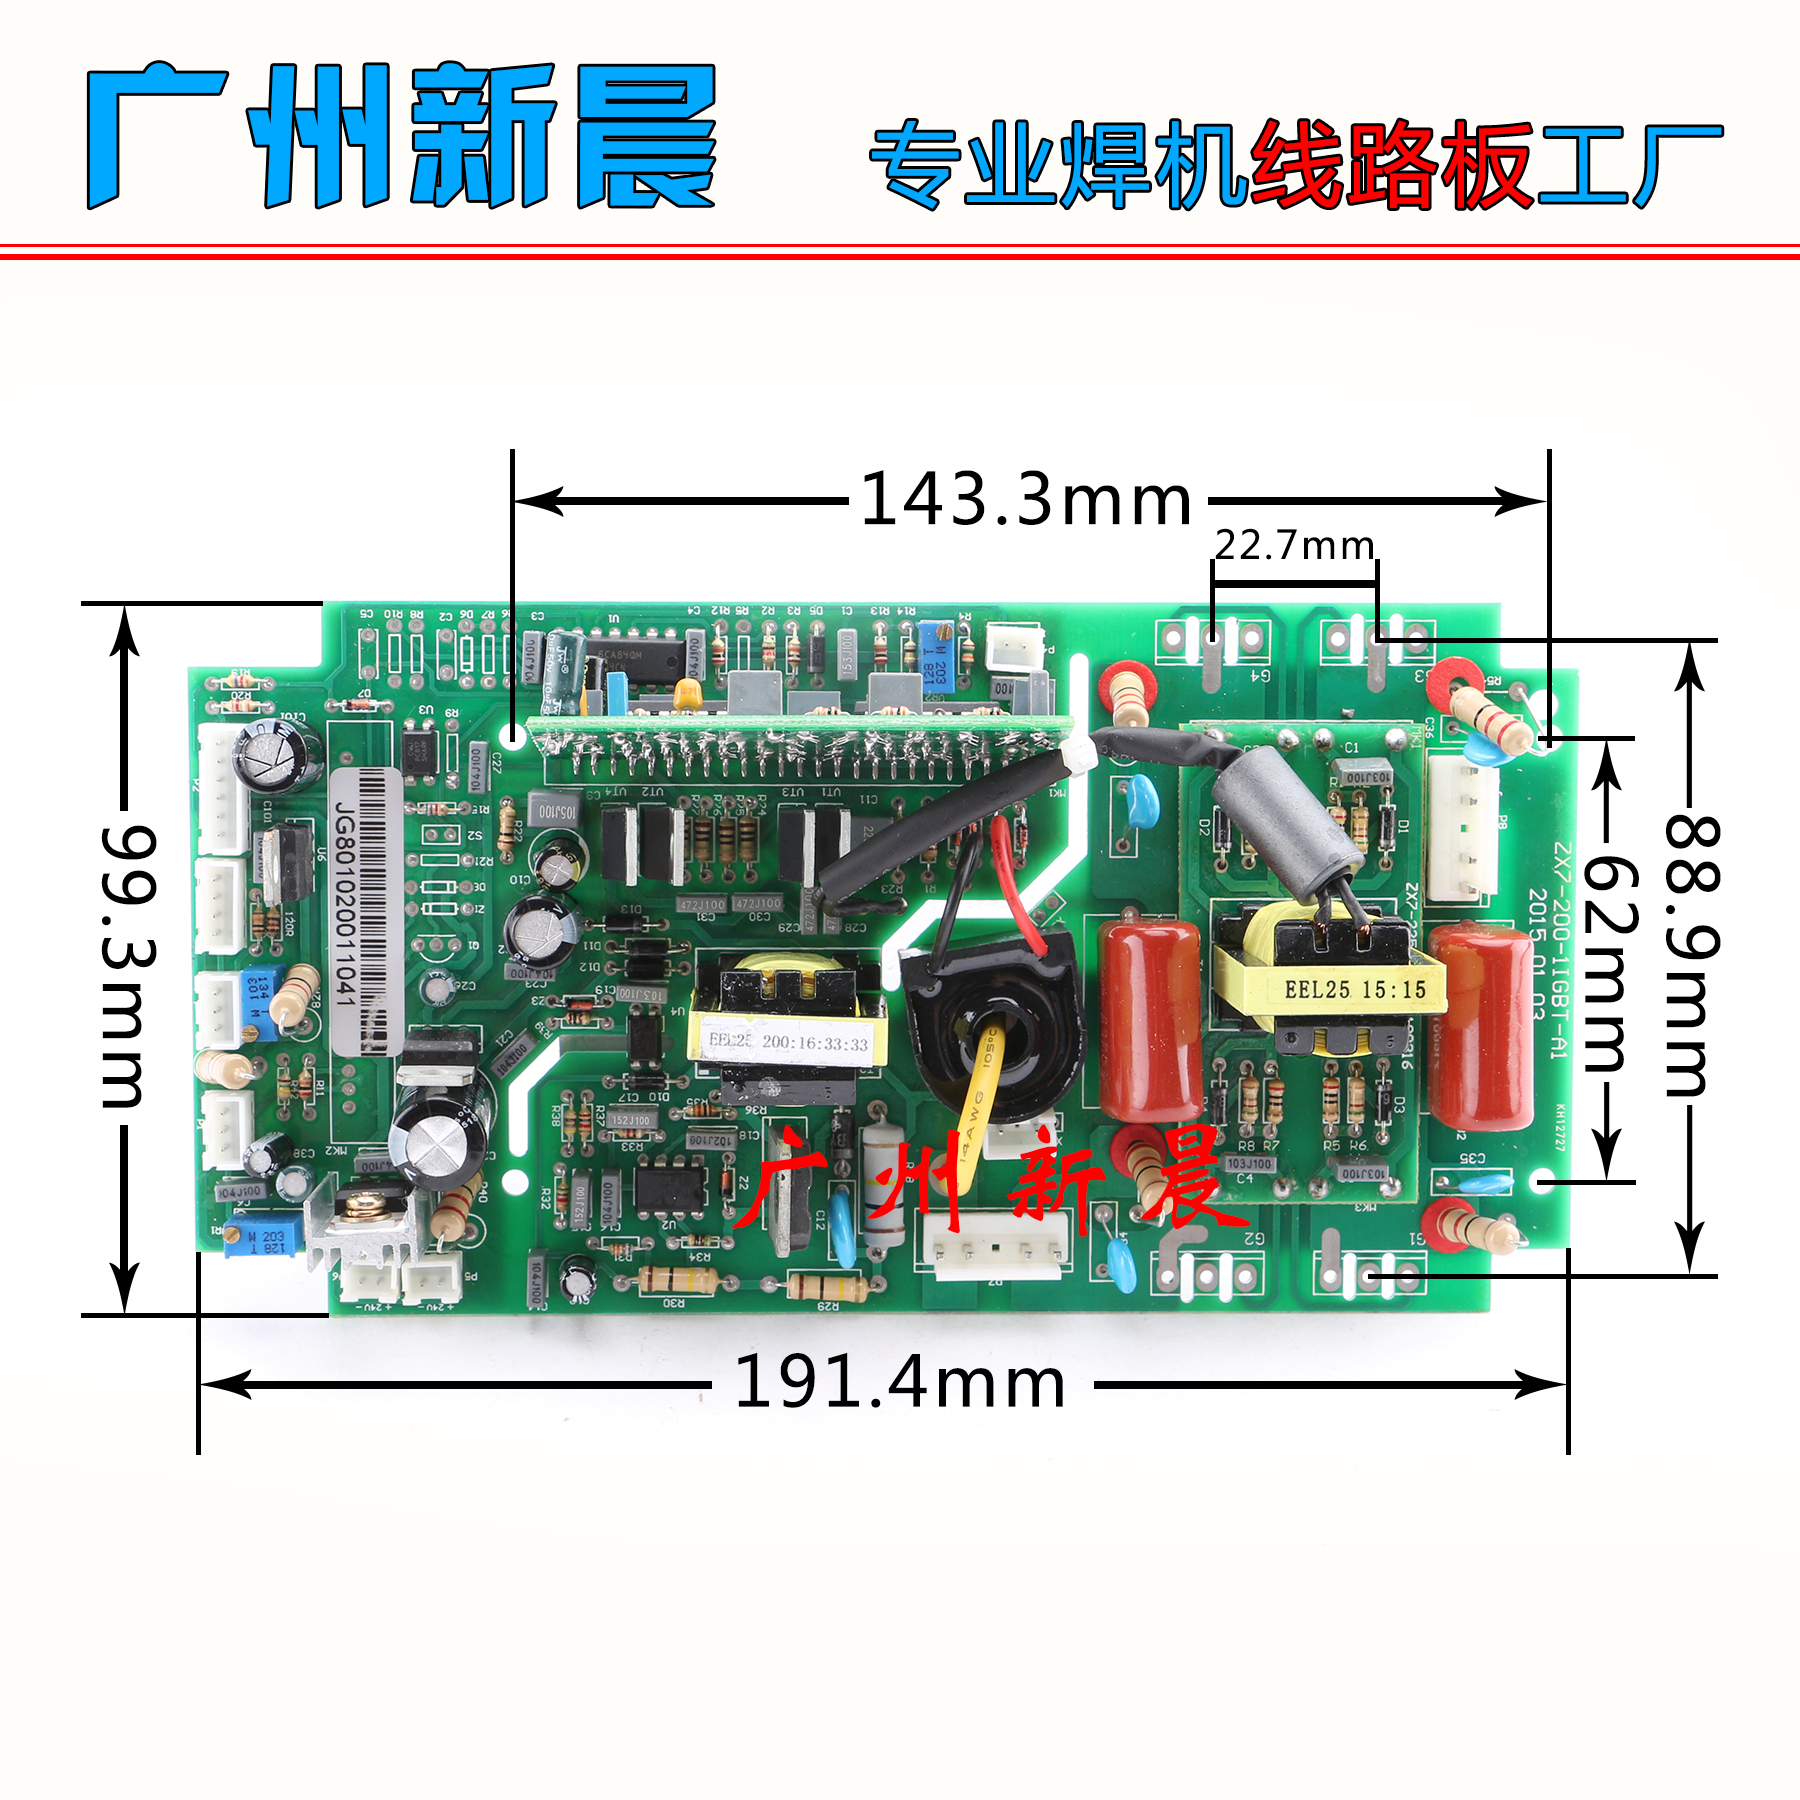 Dual Power Inverter Welding Machine Zx7-250s/315S Inverter Board IGBT Welding Machine Upper Plate Circuit Board zx7 250s single tube igbt double voltage dc welding inverter upper board control board circuit board maintenance replacement